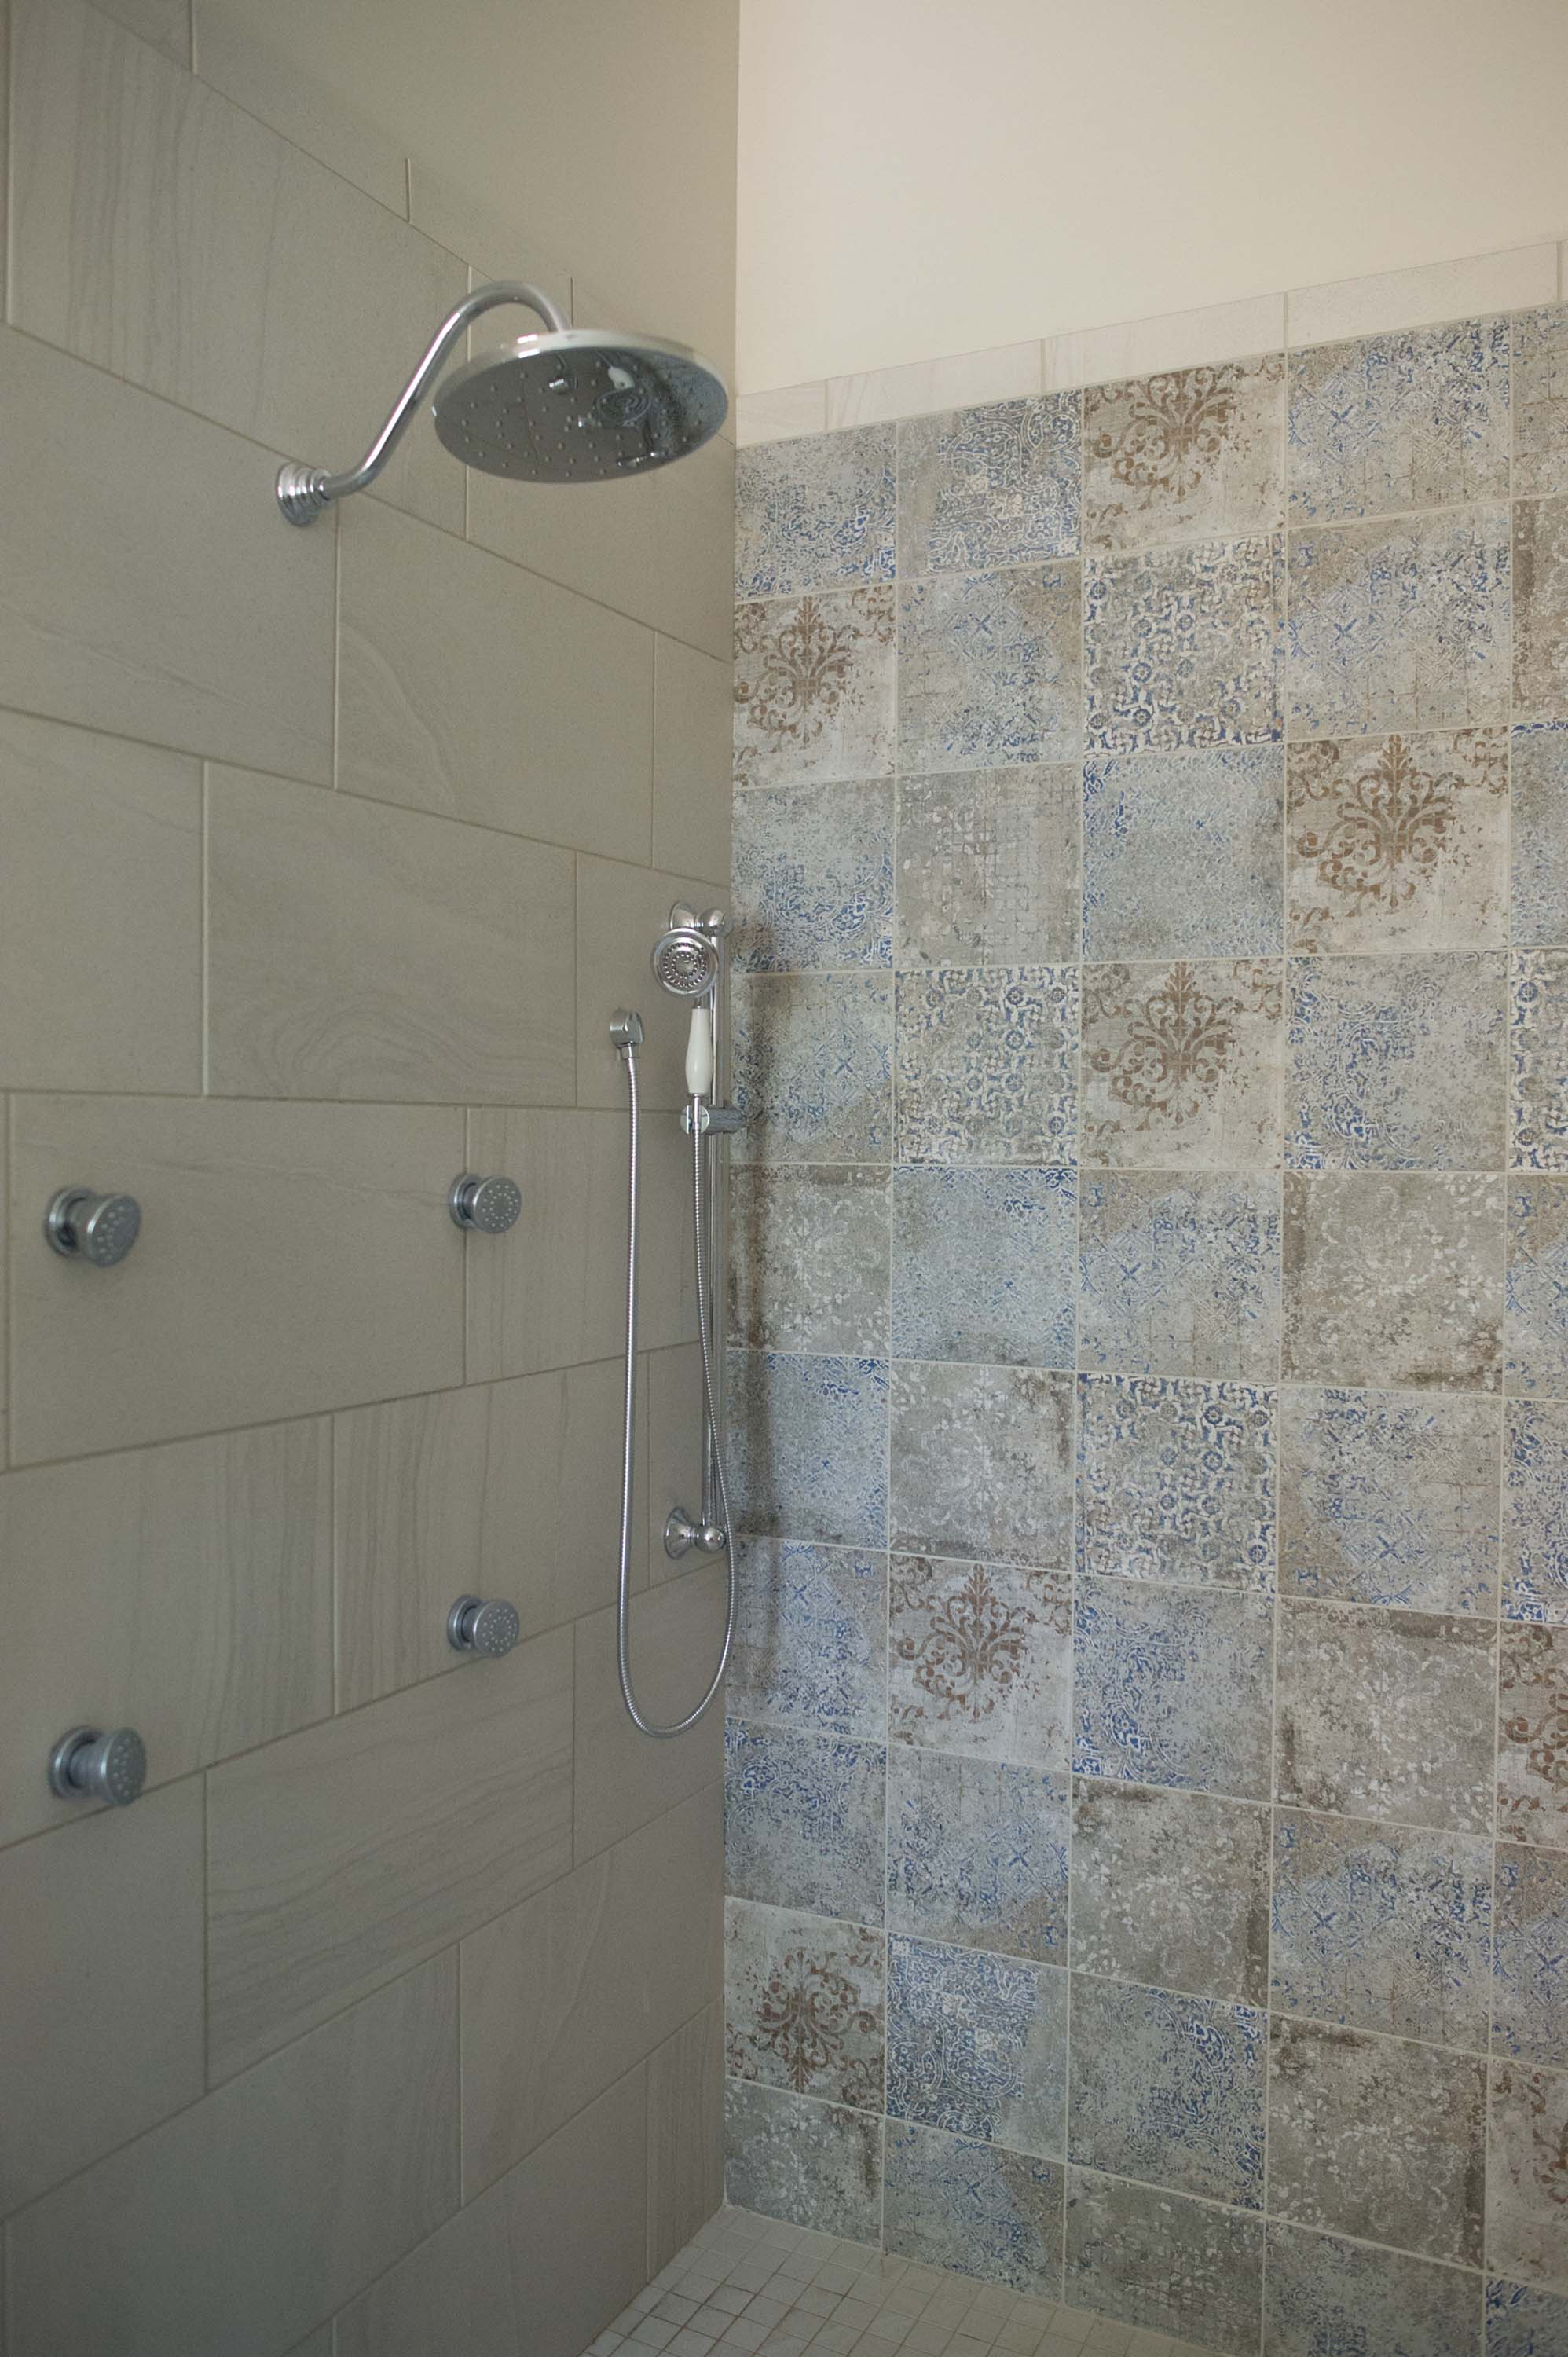 Shower room with tiles and shower head